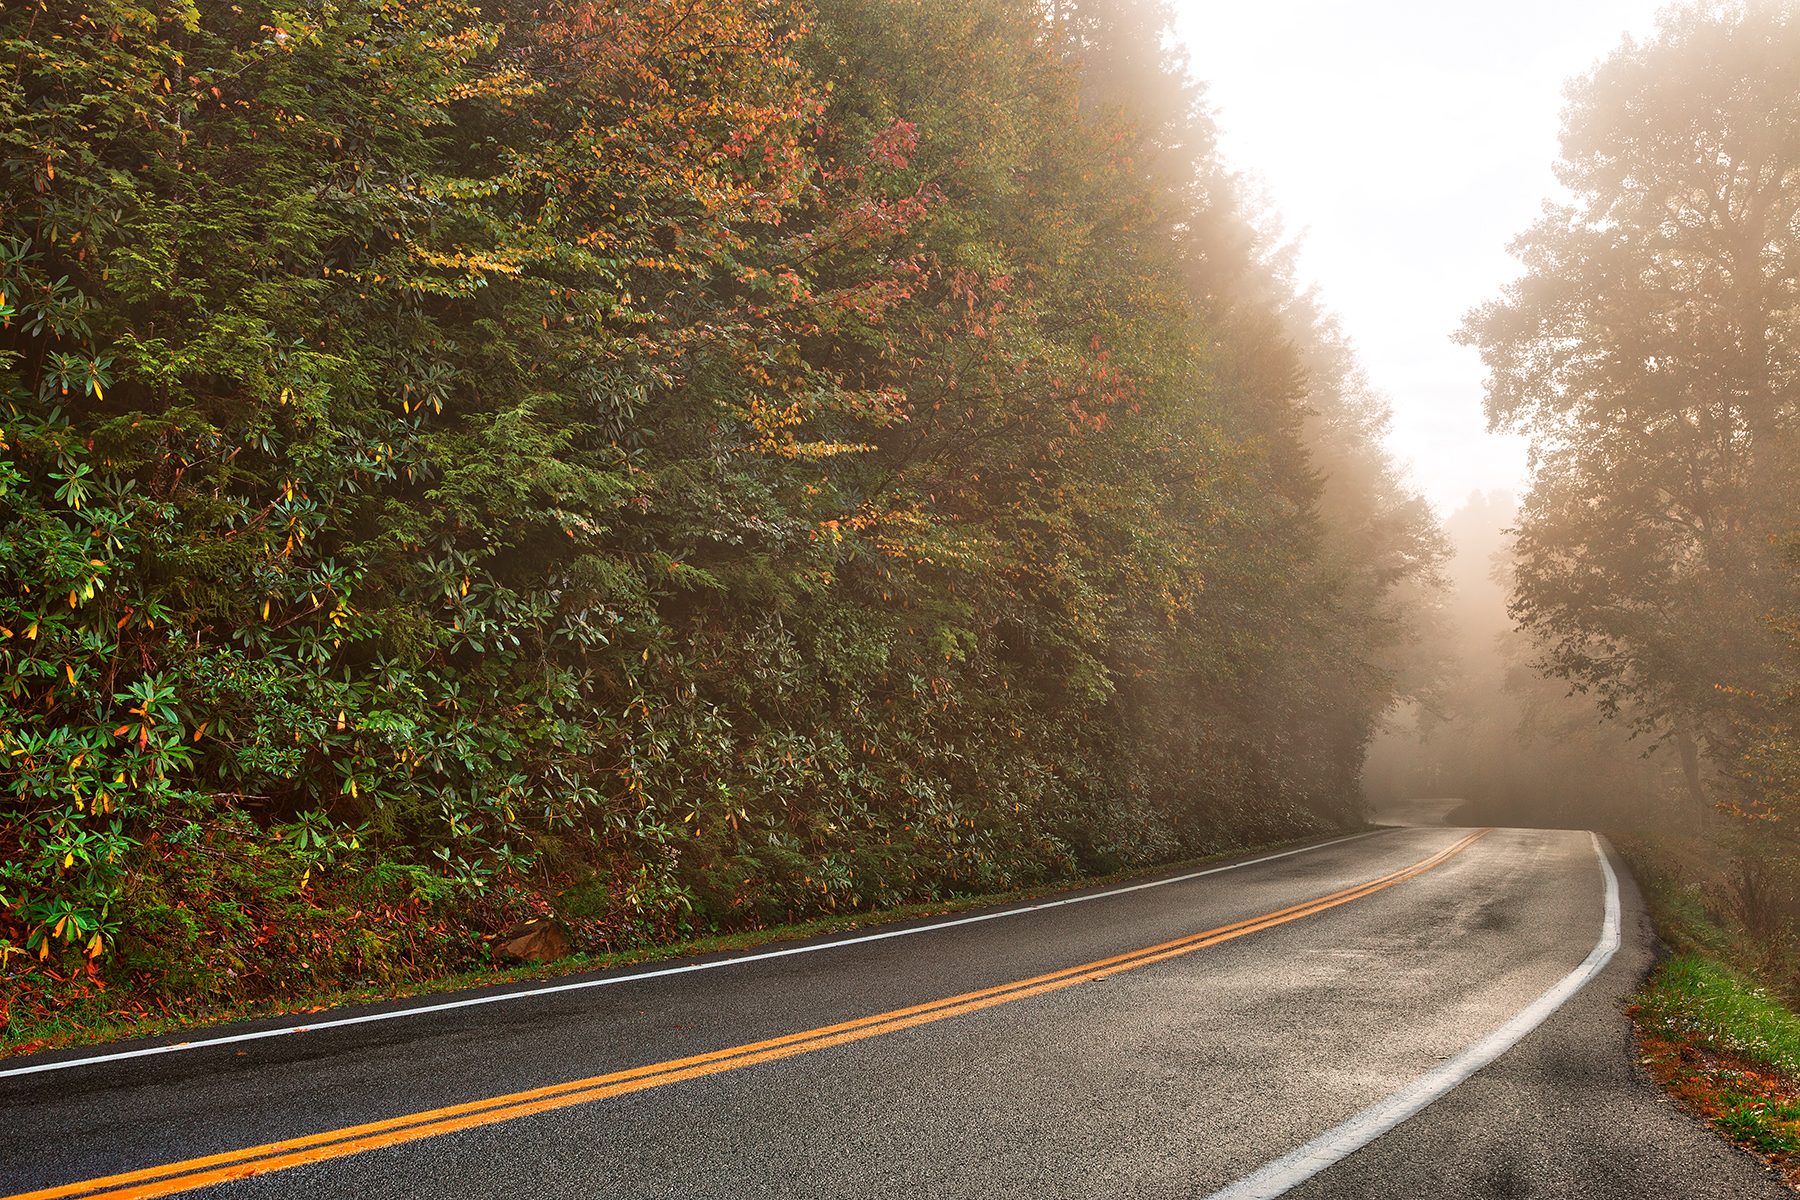 Slick mist forest road - hdr photo